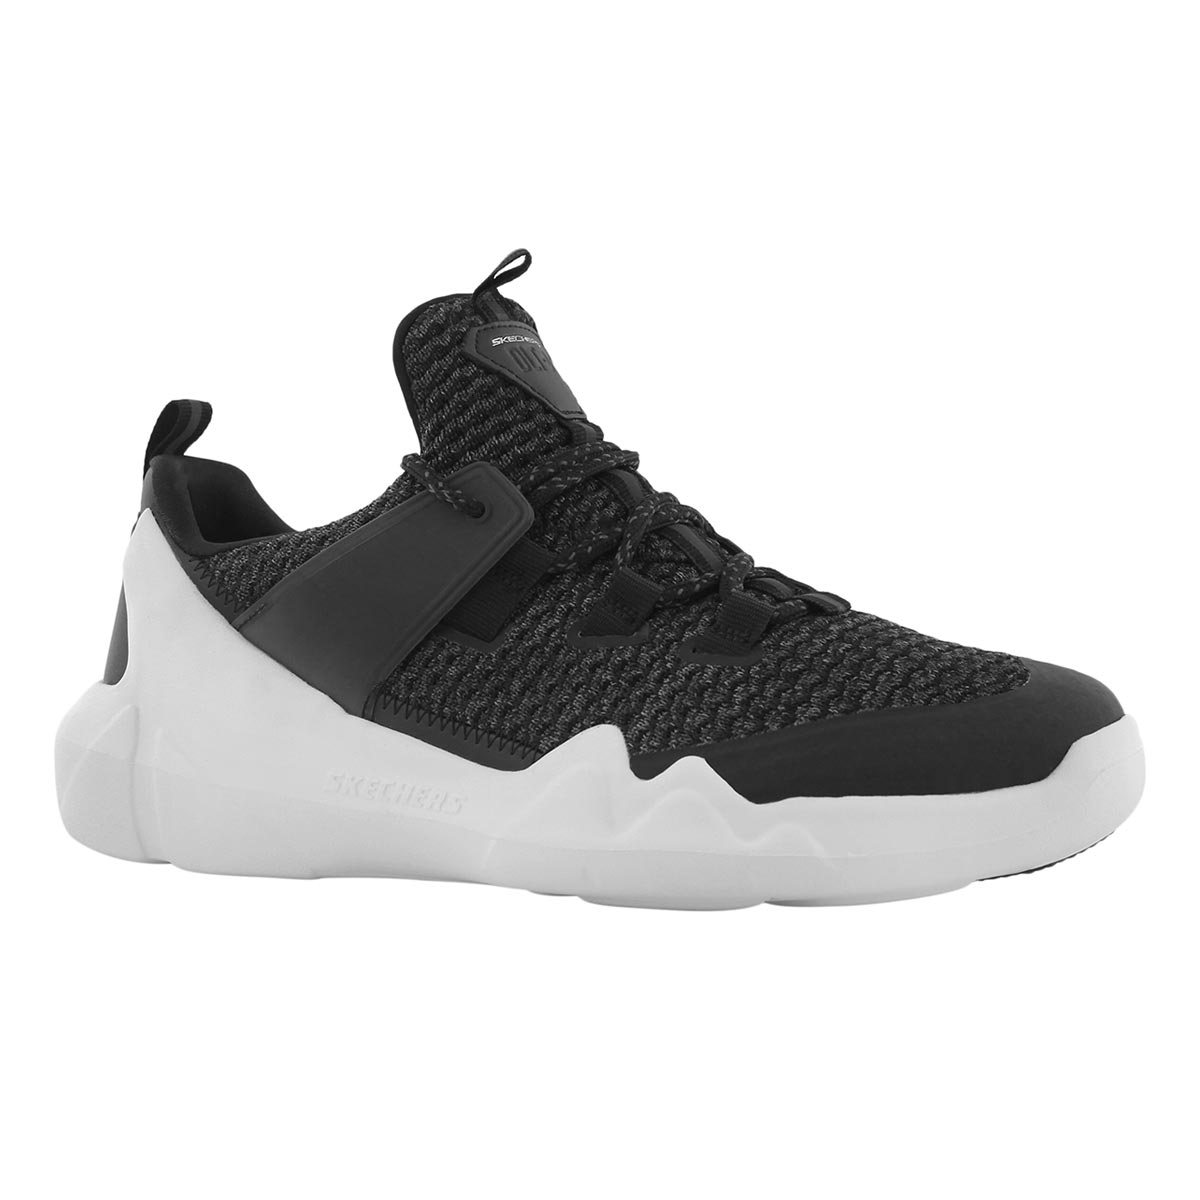 Men's DLT-A black lace up running shoes